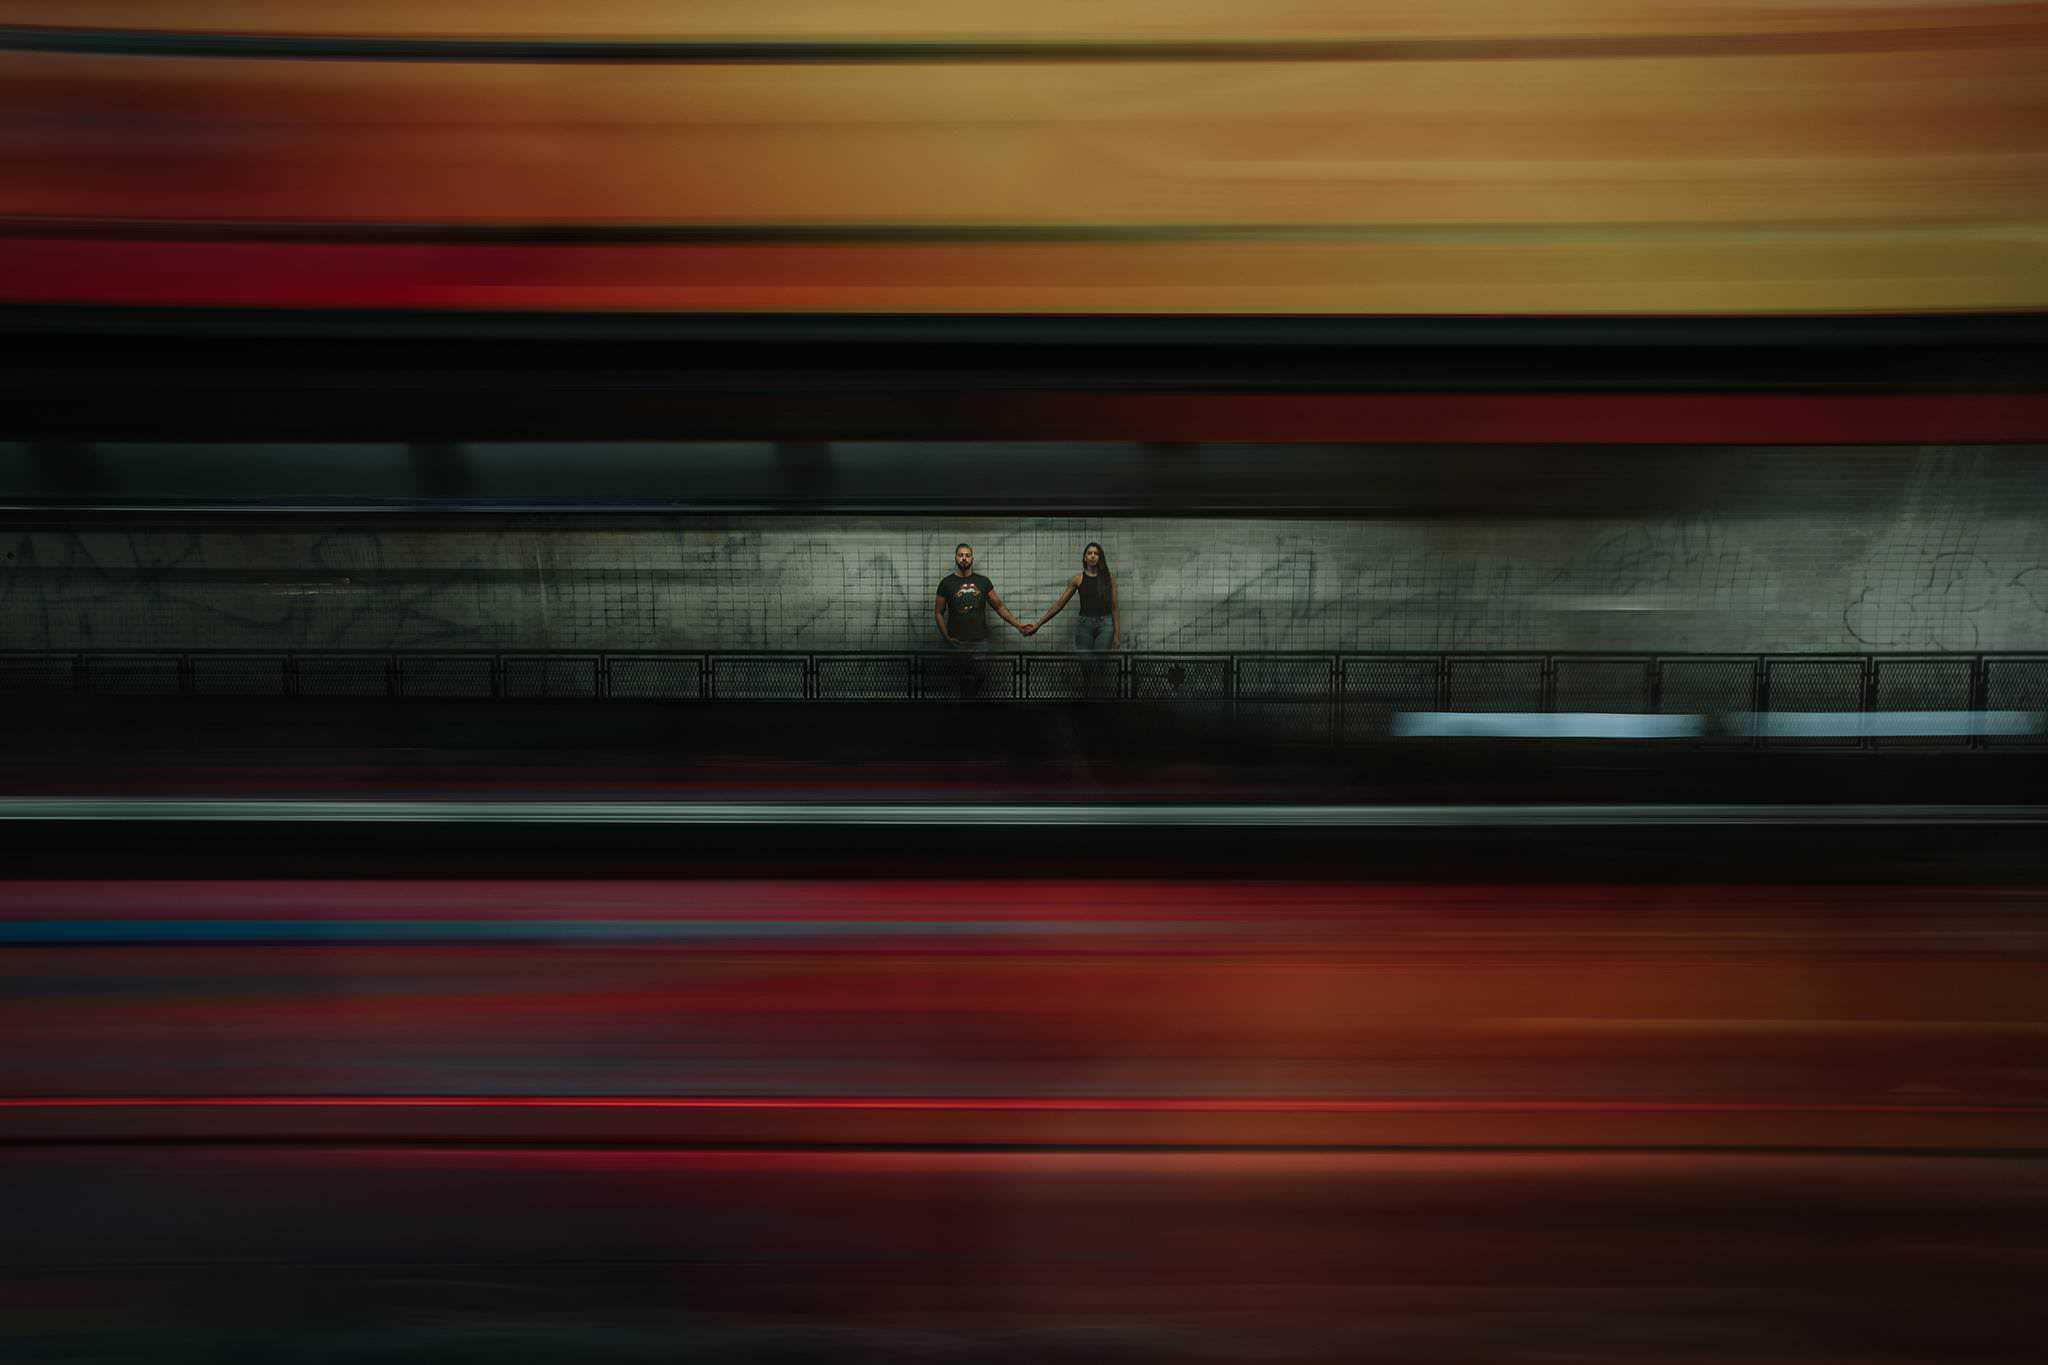 Long Exposure Photography of a couple in the subway